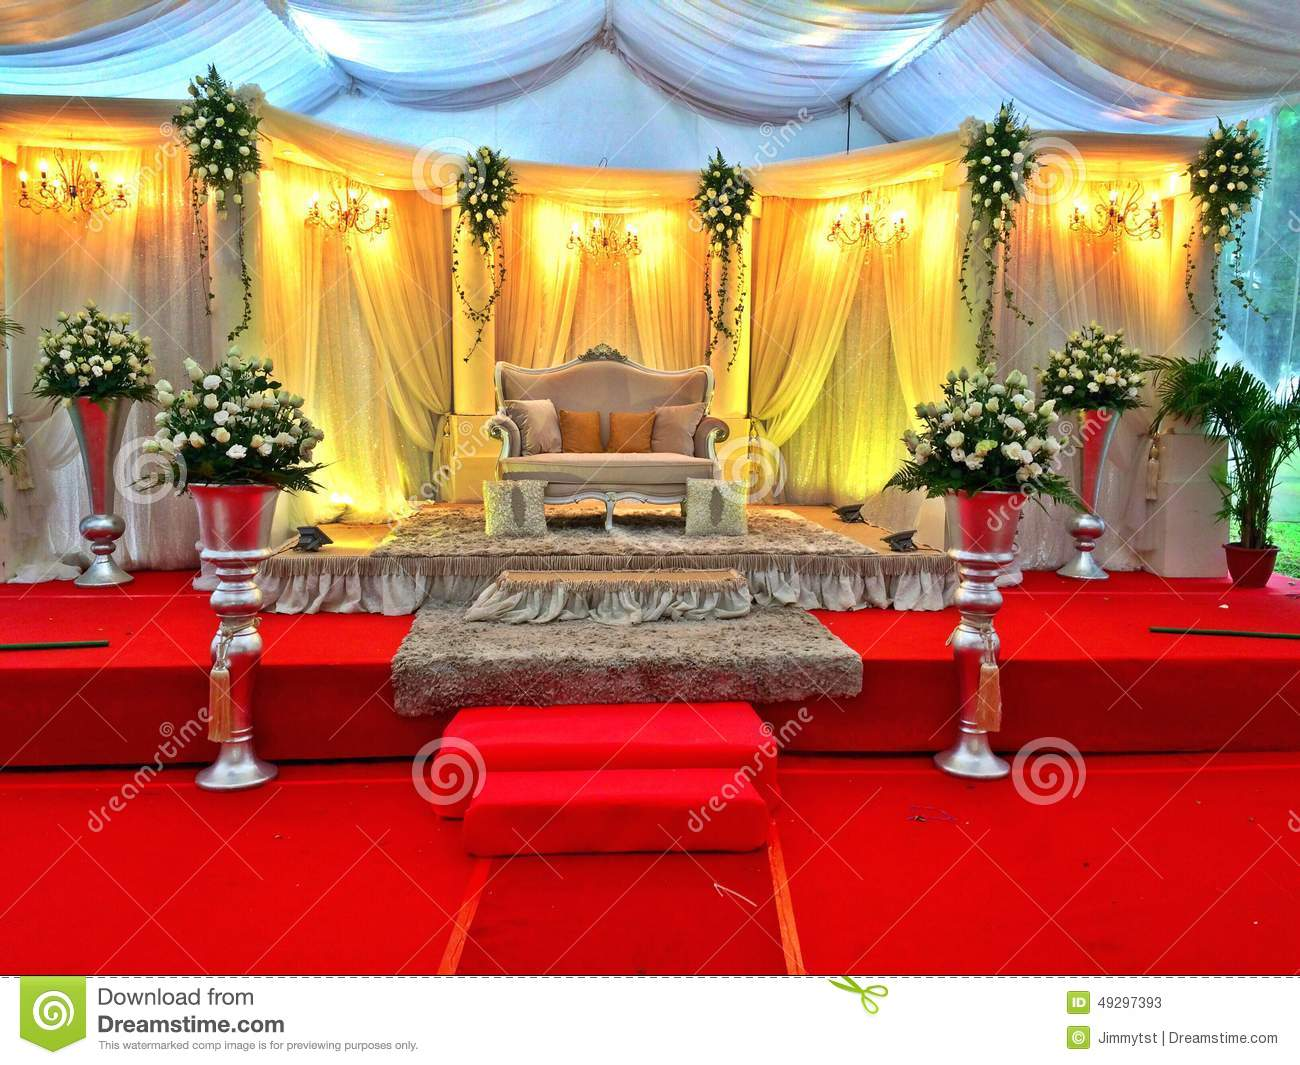 Malay Wedding Stage Decor Singapore Editorial Stock Photo